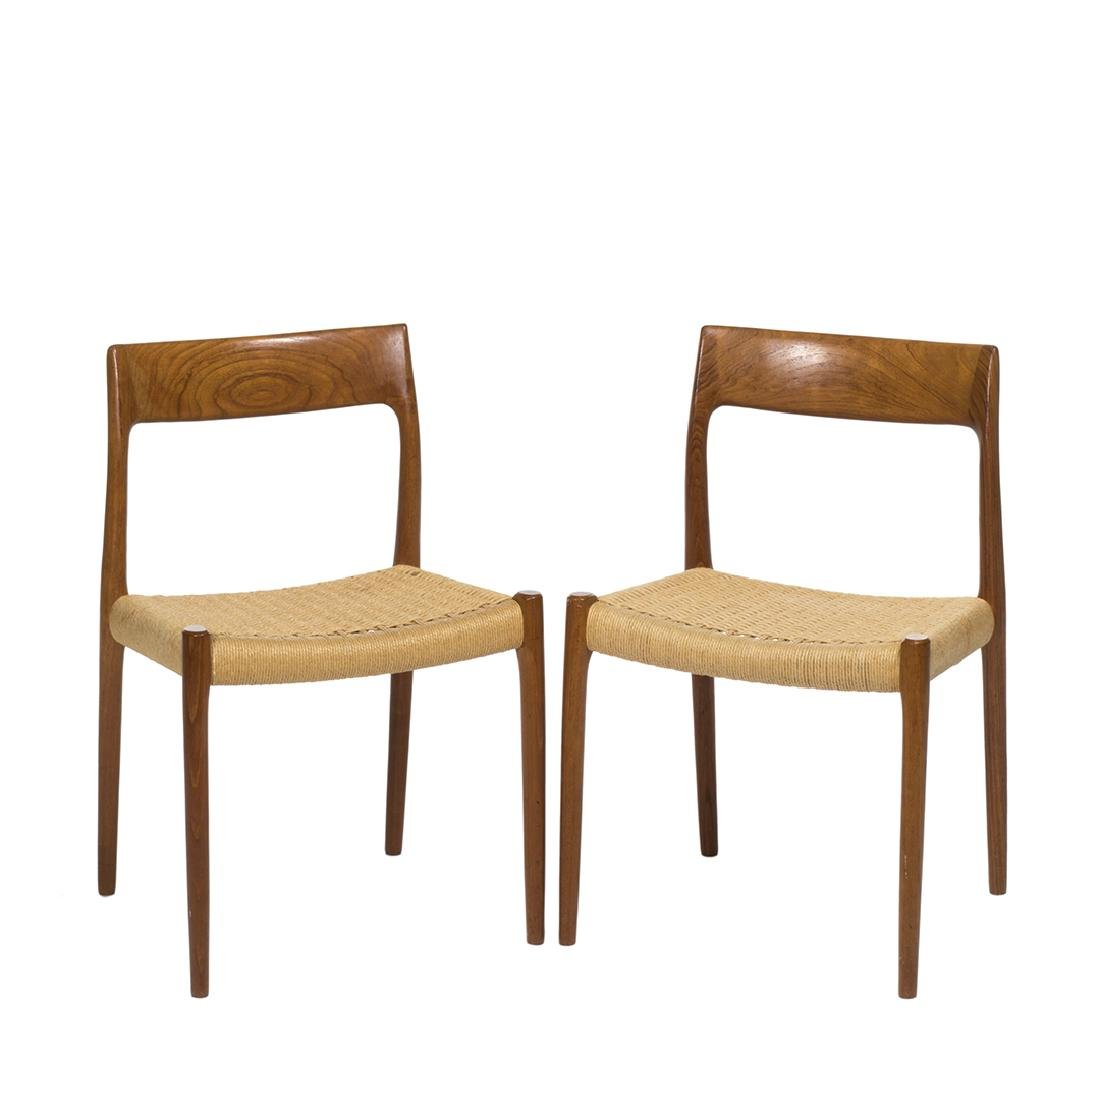 Niels Moller Model 77 Chairs (2)